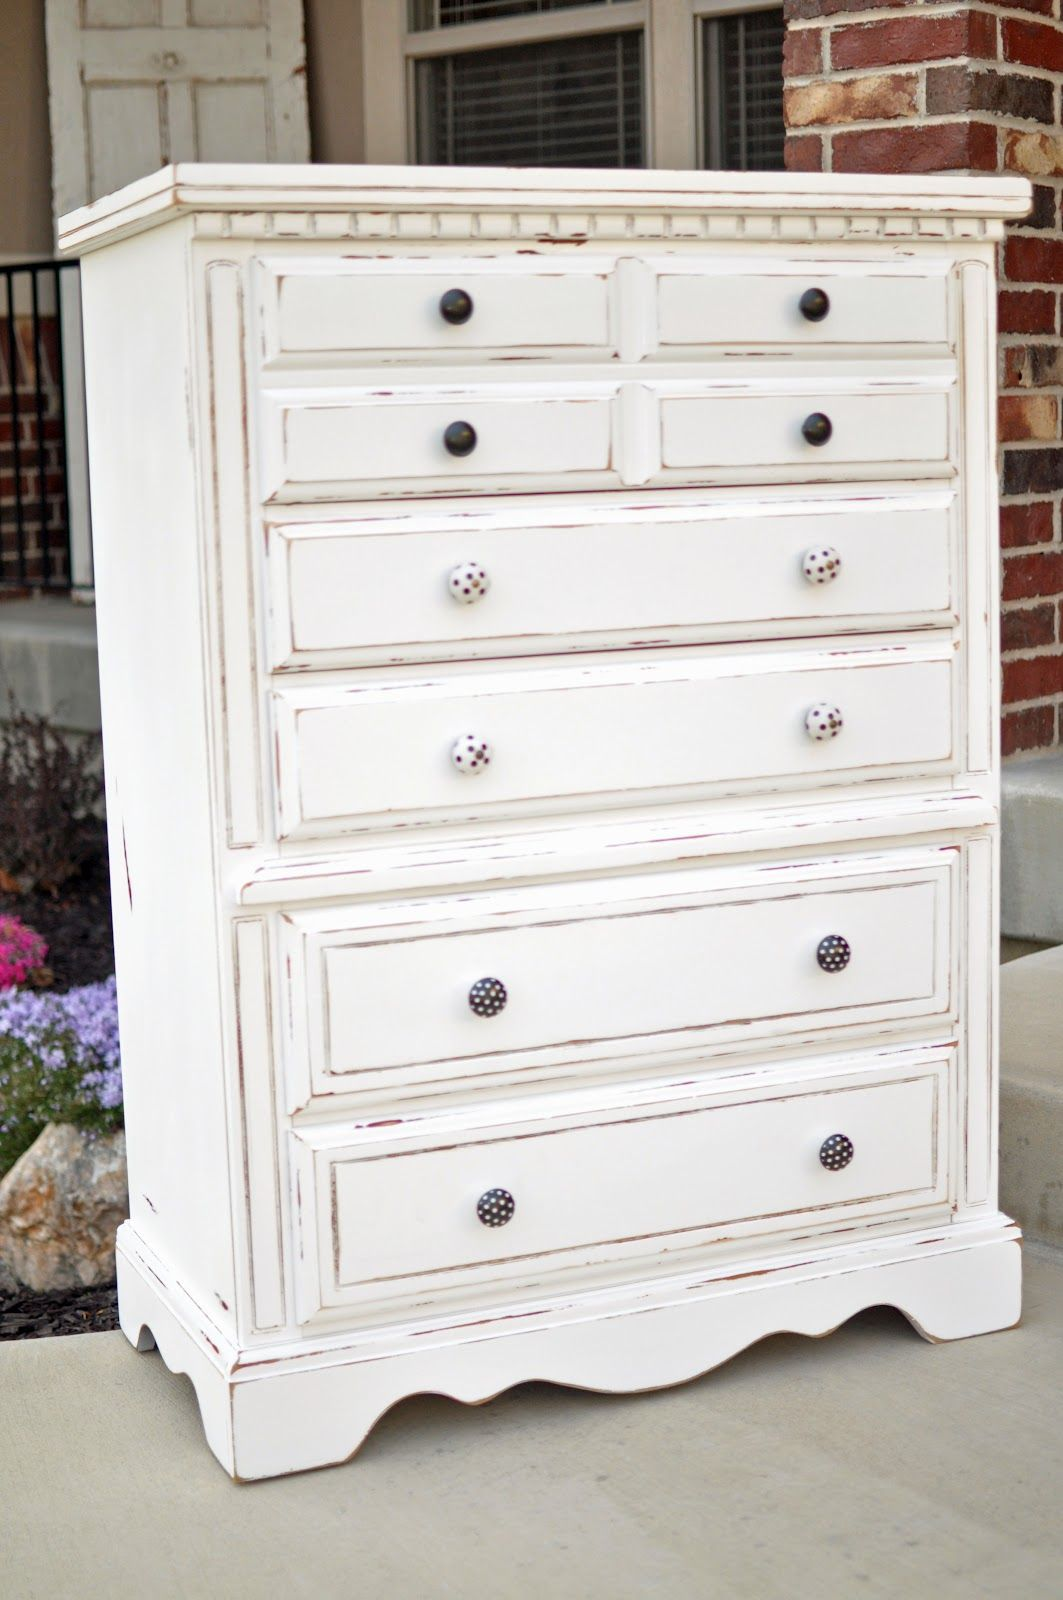 Furniture redo   White refinished. White refinished distressed dresser  CleverlyCrafty blogspot com